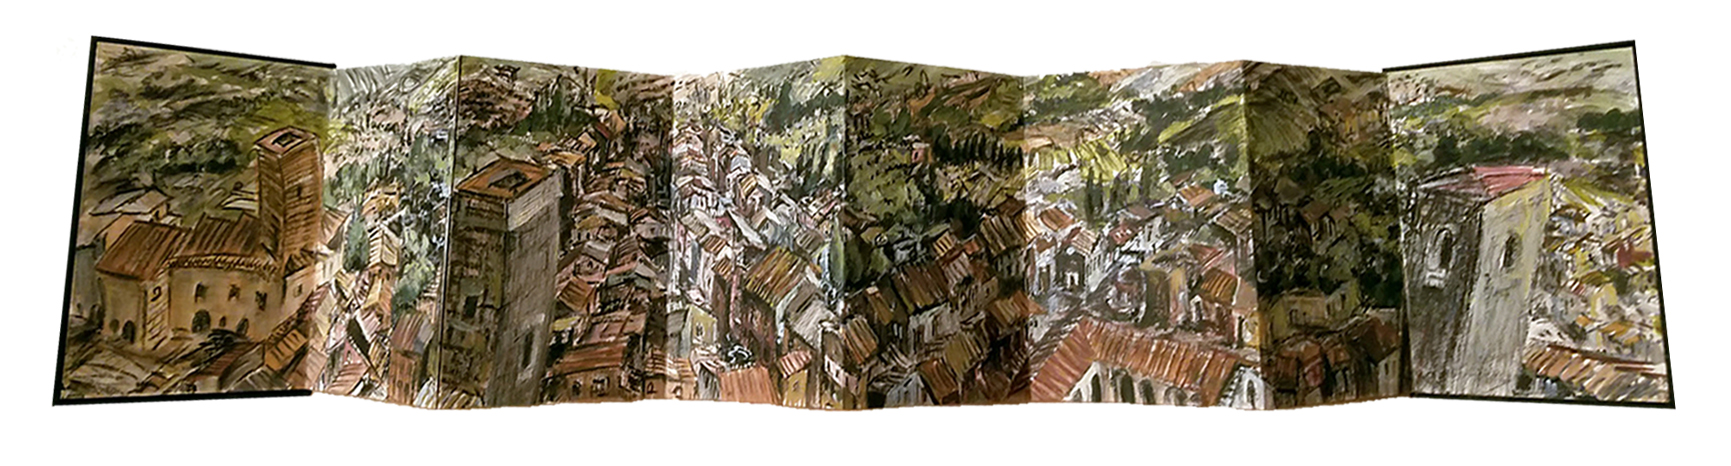 Steve Zolin   San Gimignano   2016  China marker and oil paint in accordion sketchbook  Signed and dated by the artist in pencil,  verso   7 x 38 7/8 inches